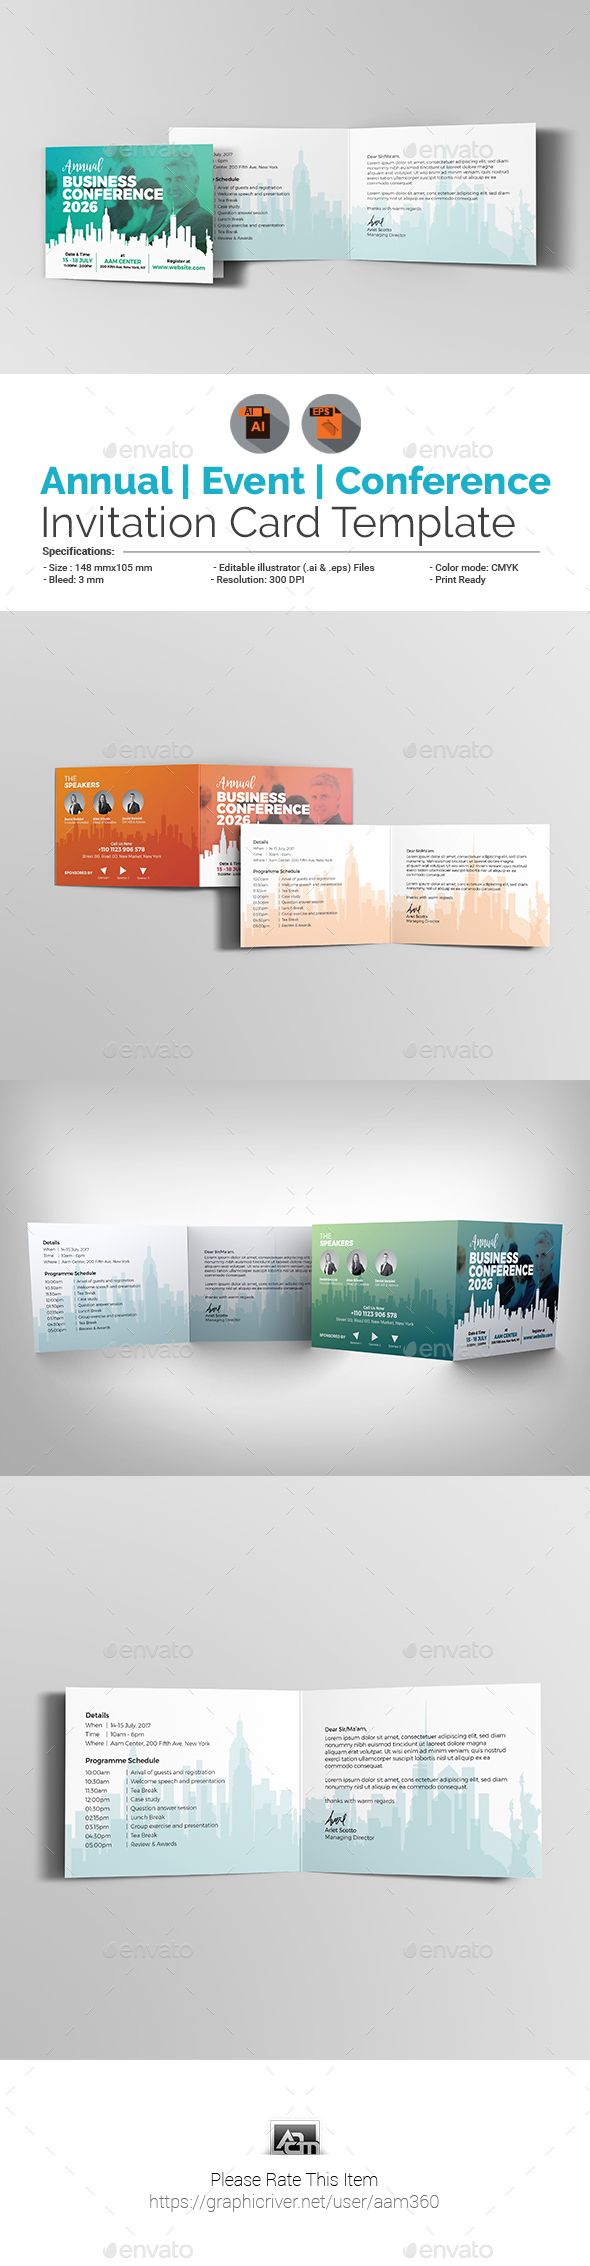 Annual Business EventConference Invitation Card  Business Events